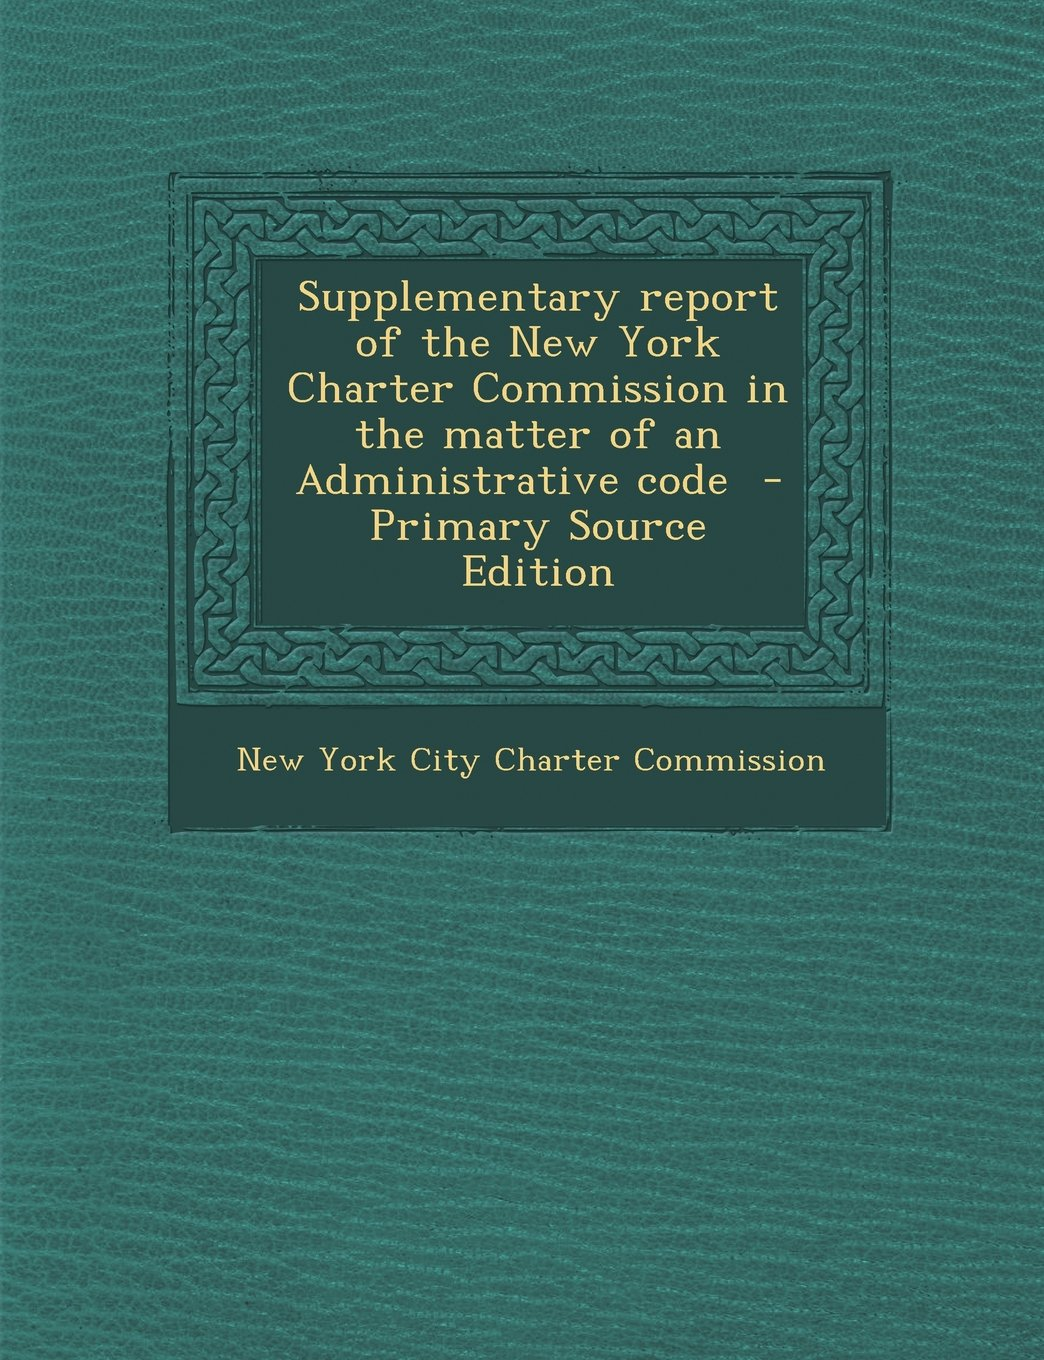 Download Supplementary Report of the New York Charter Commission in the Matter of an Administrative Code - Primary Source Edition PDF